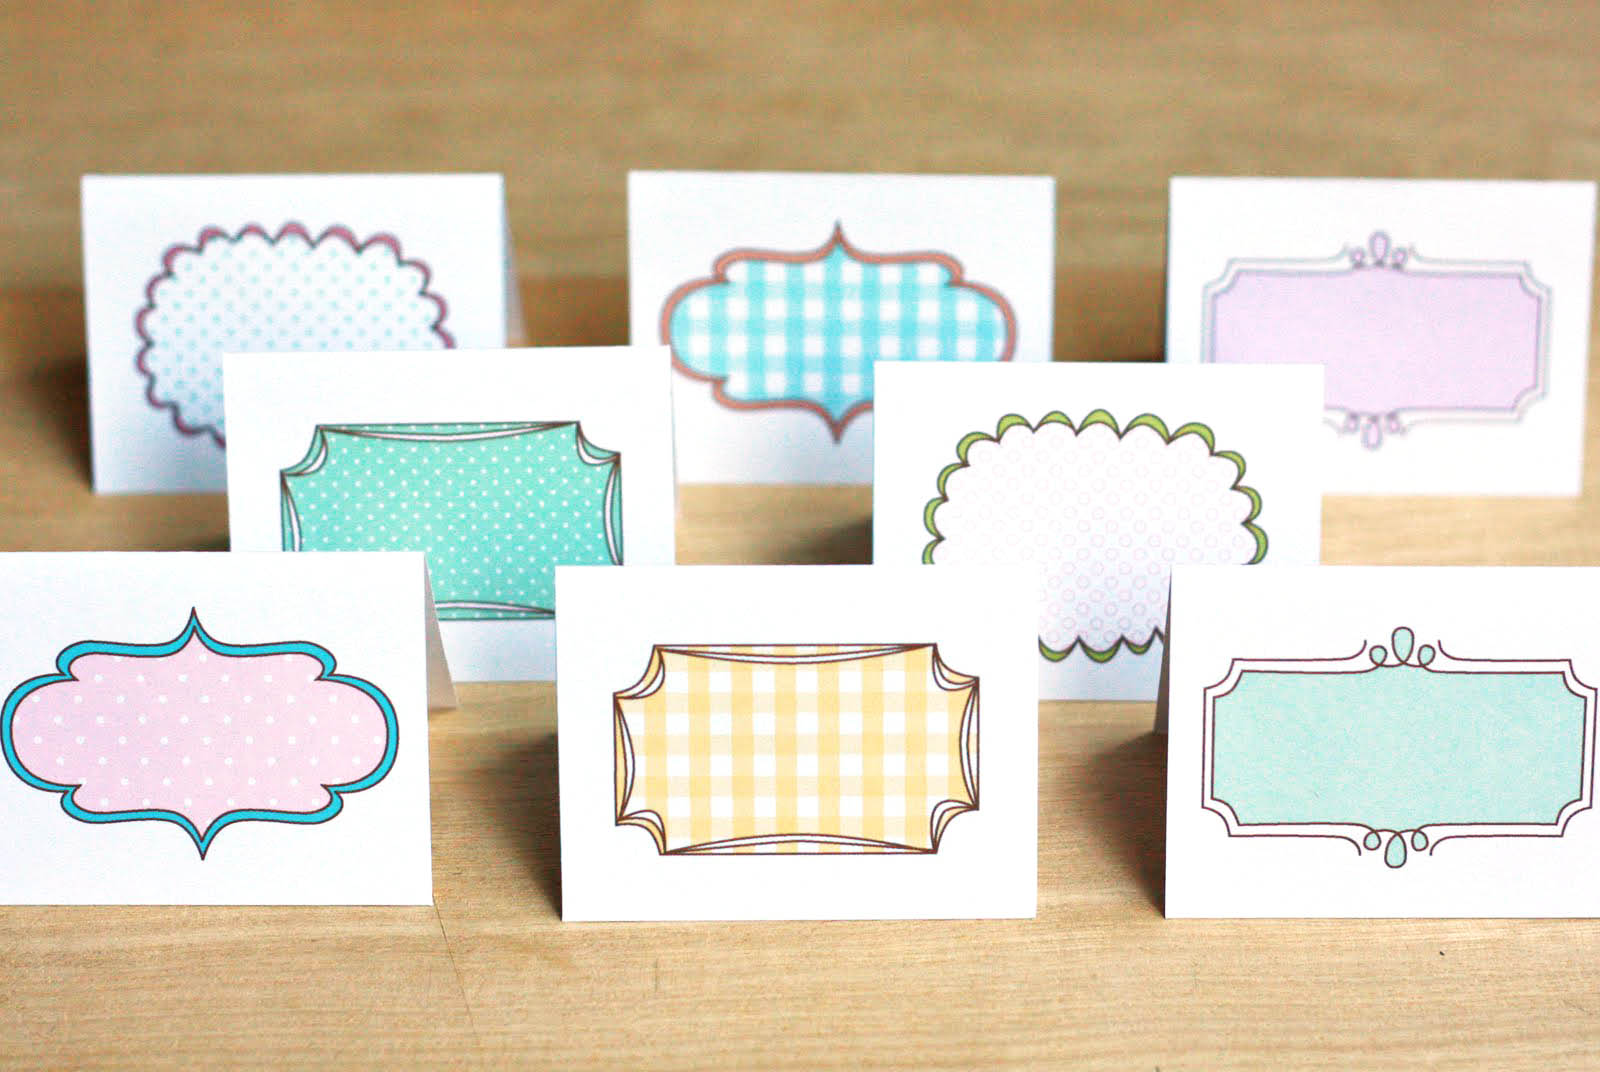 photograph regarding Free Printable Note Cards titled Absolutely free Printable Mini Playing cards The Delectable Tool